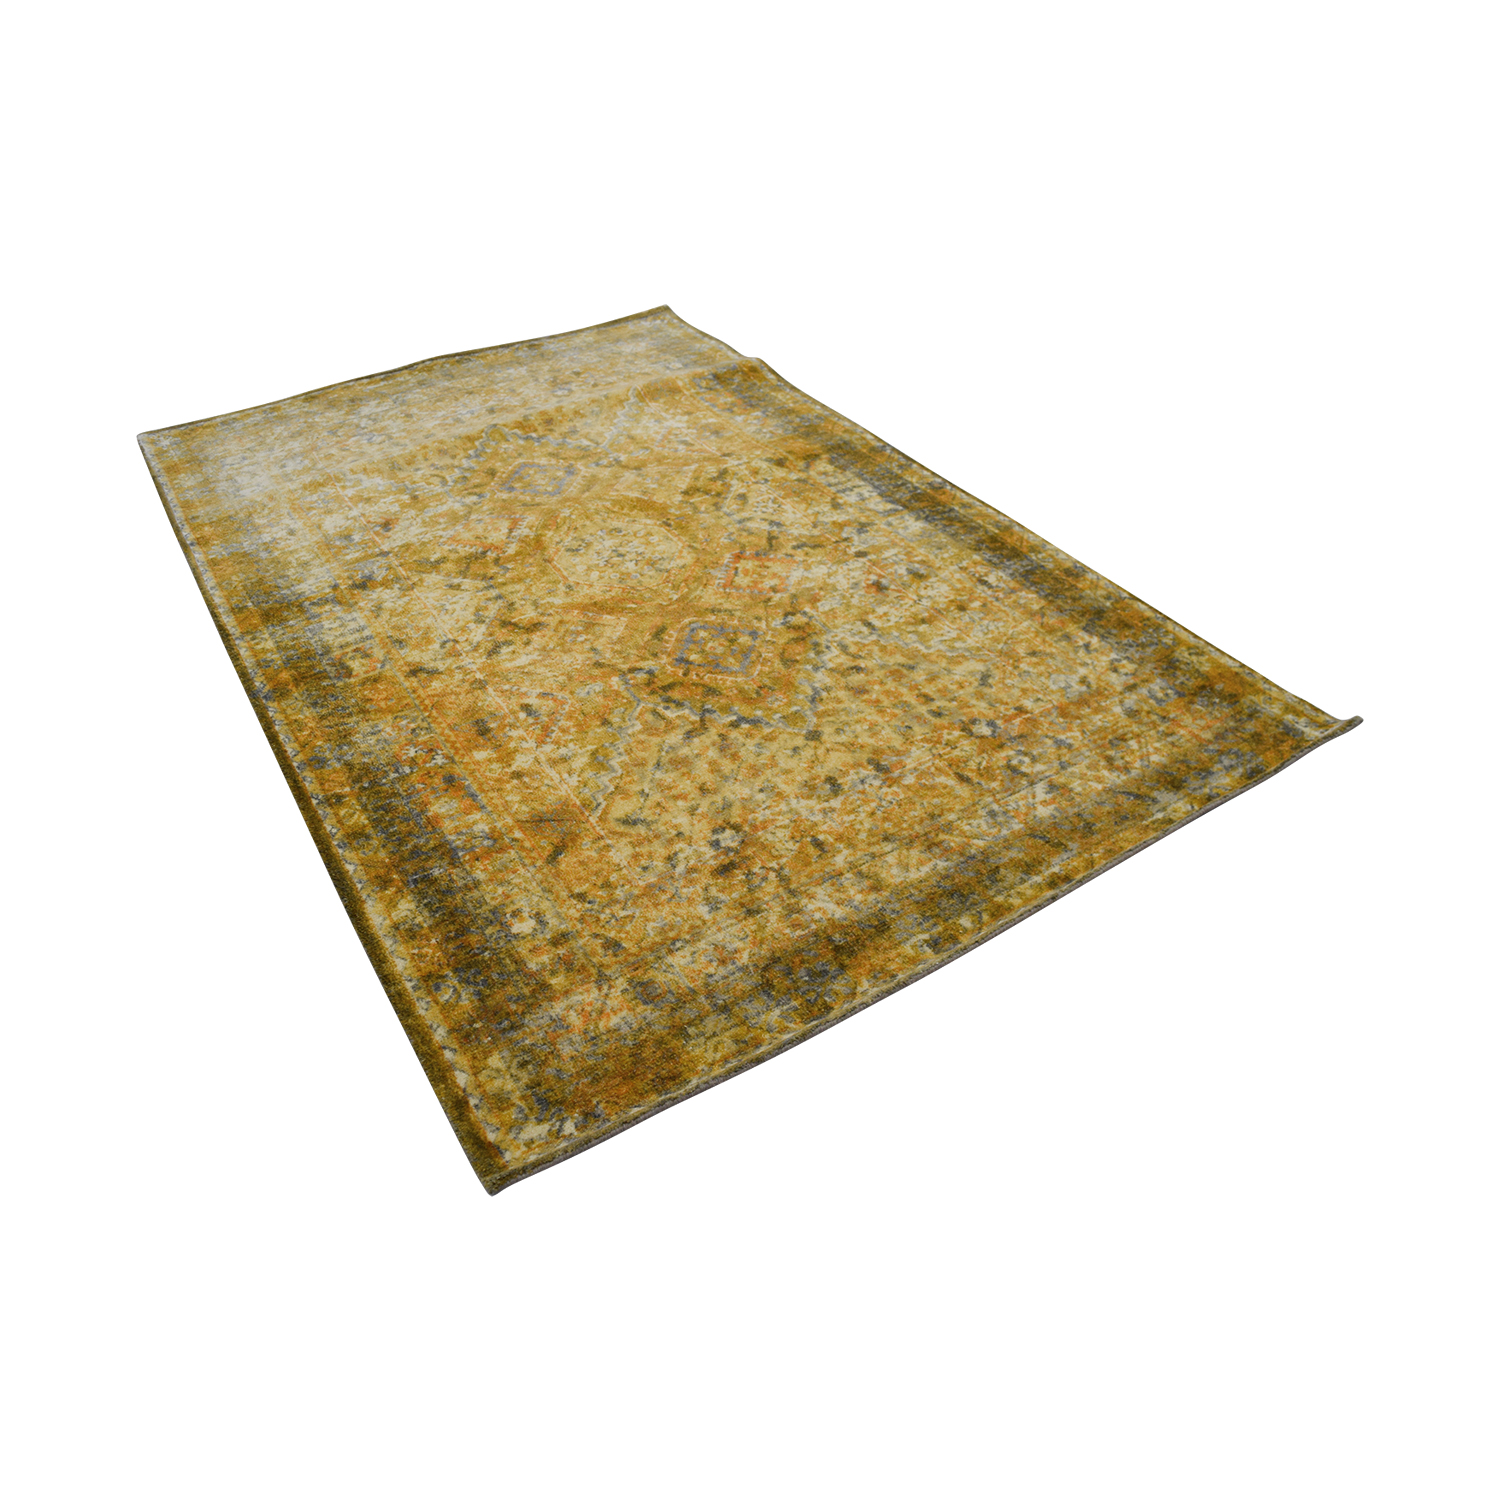 Obeetee Obeetee Yellow Hand Tufted Wool Rug Rugs